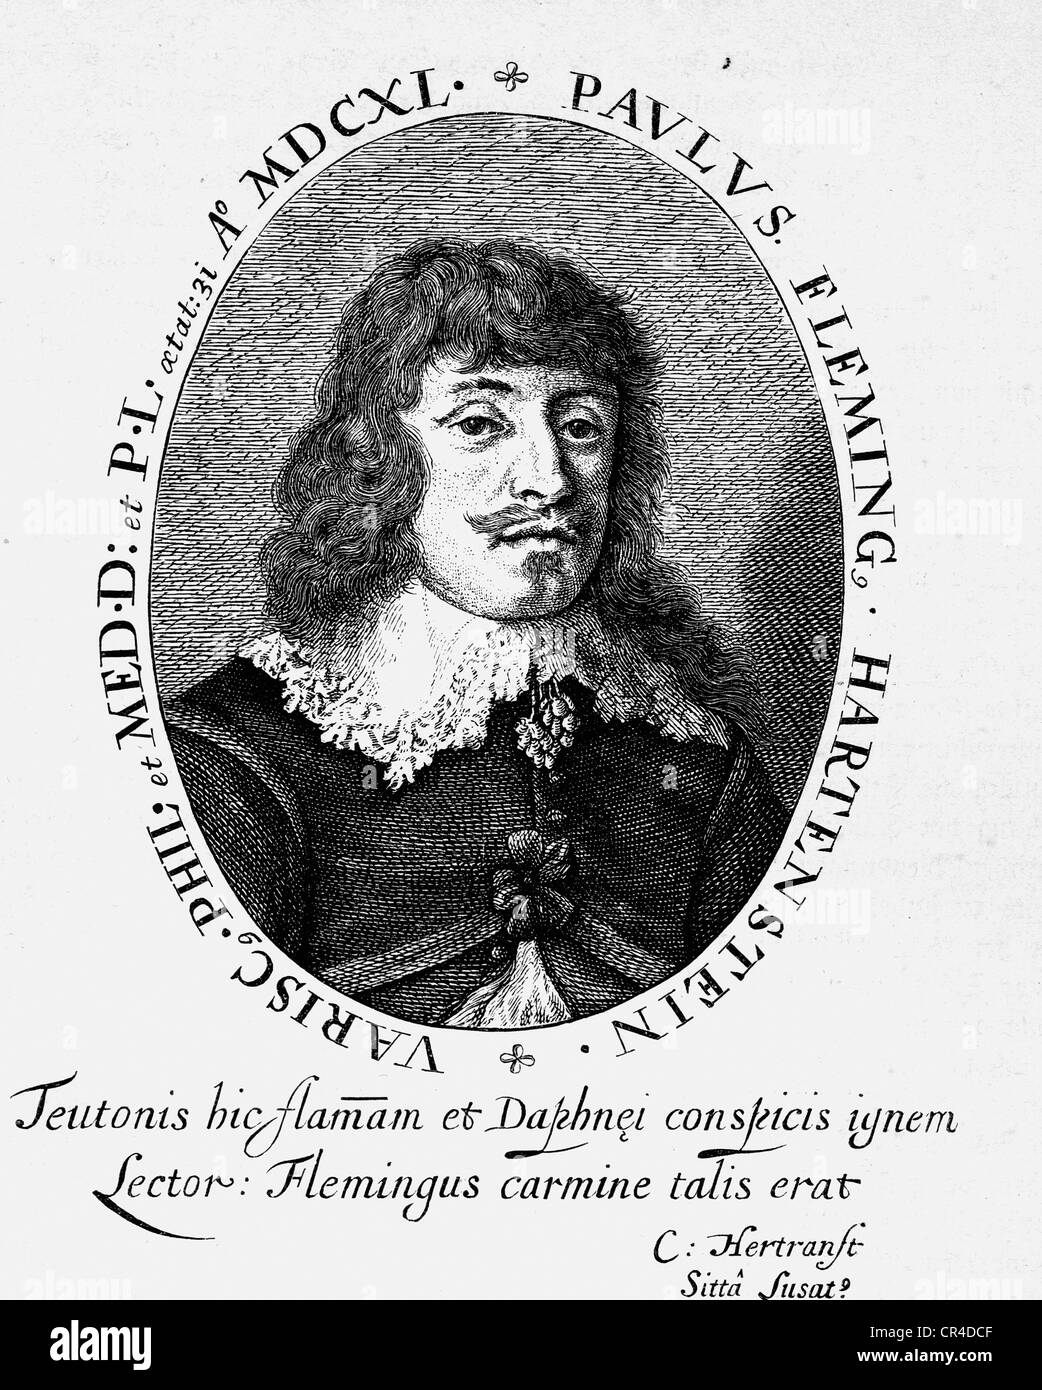 Paul Fleming (1609-1640), physician and writer - Stock Image